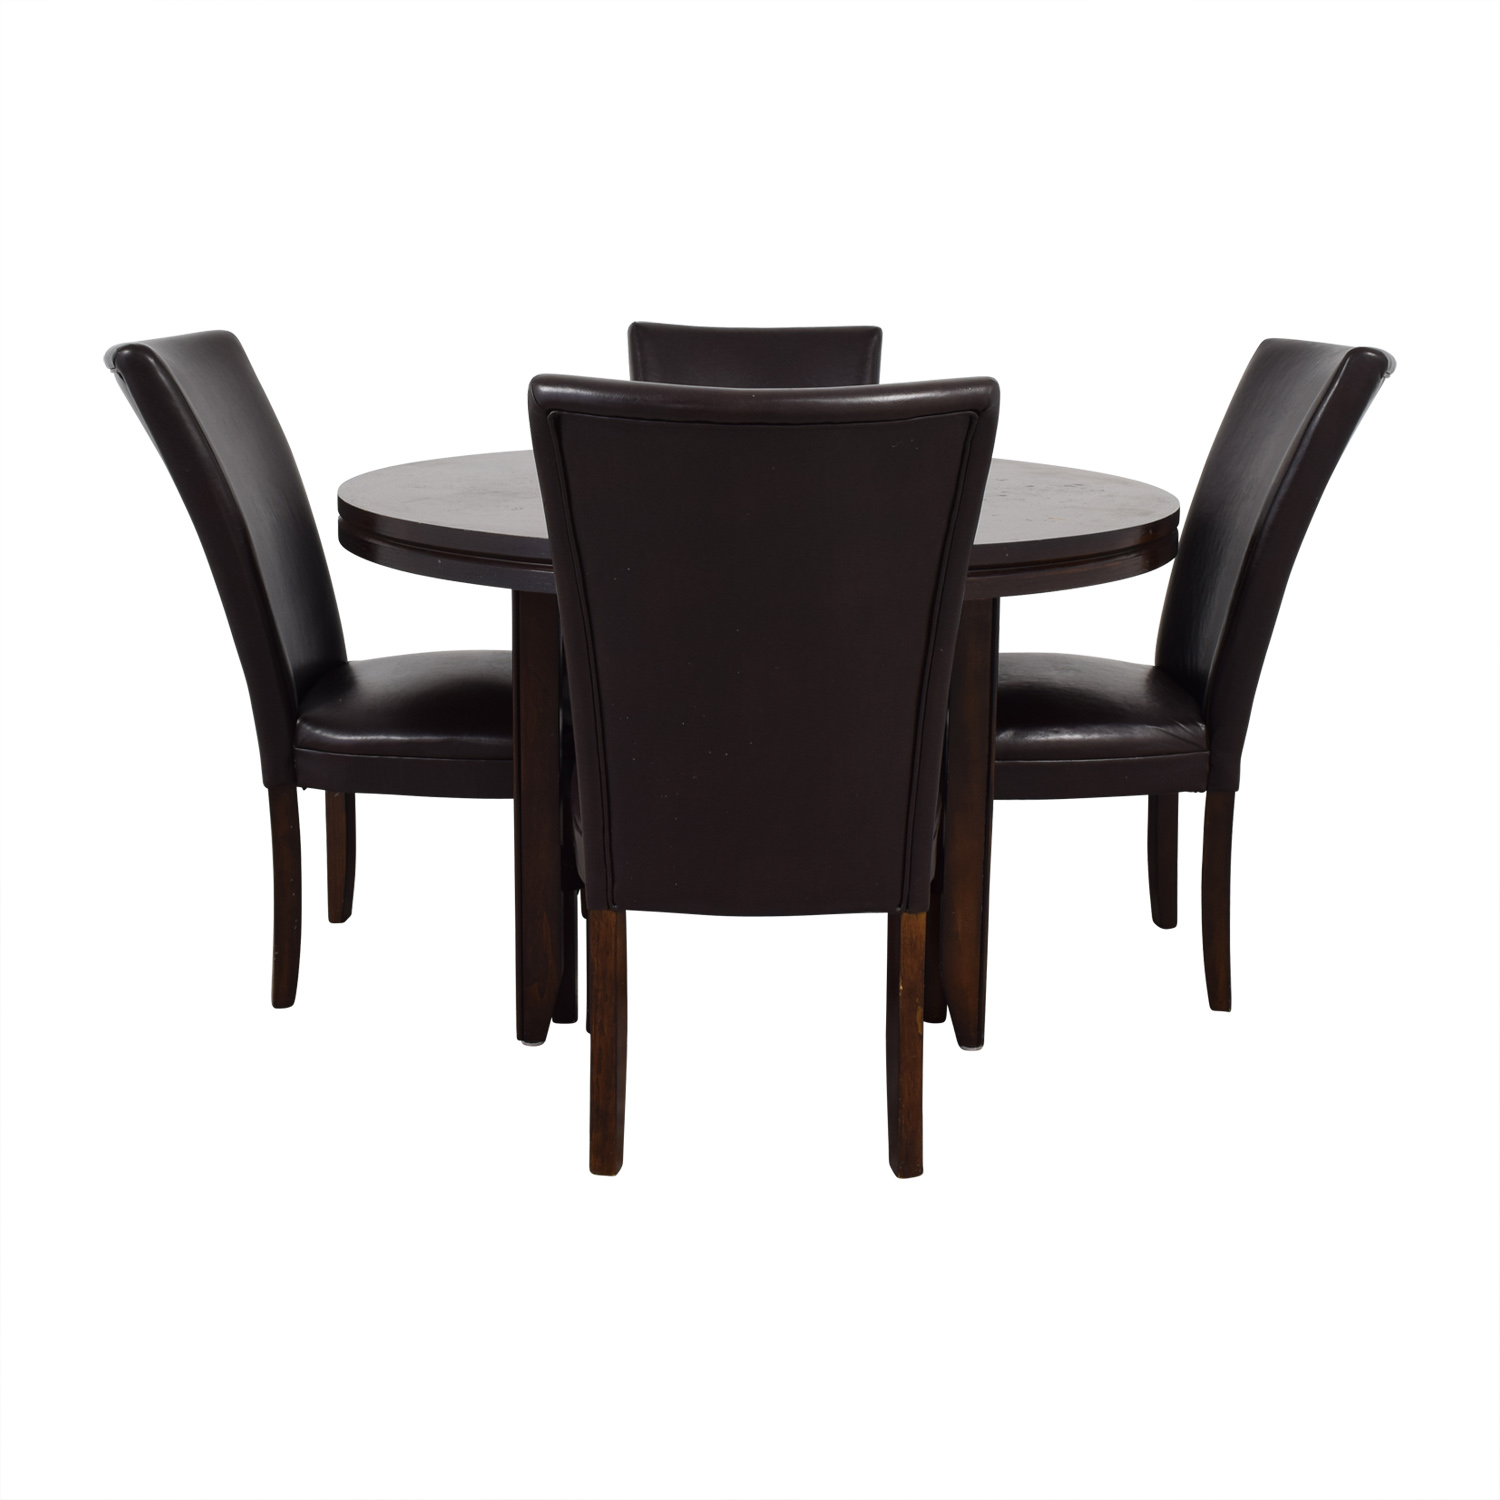 6db74ffd4ae 87% OFF - Round Wood Dining Table with Black Leather Chairs   Tables